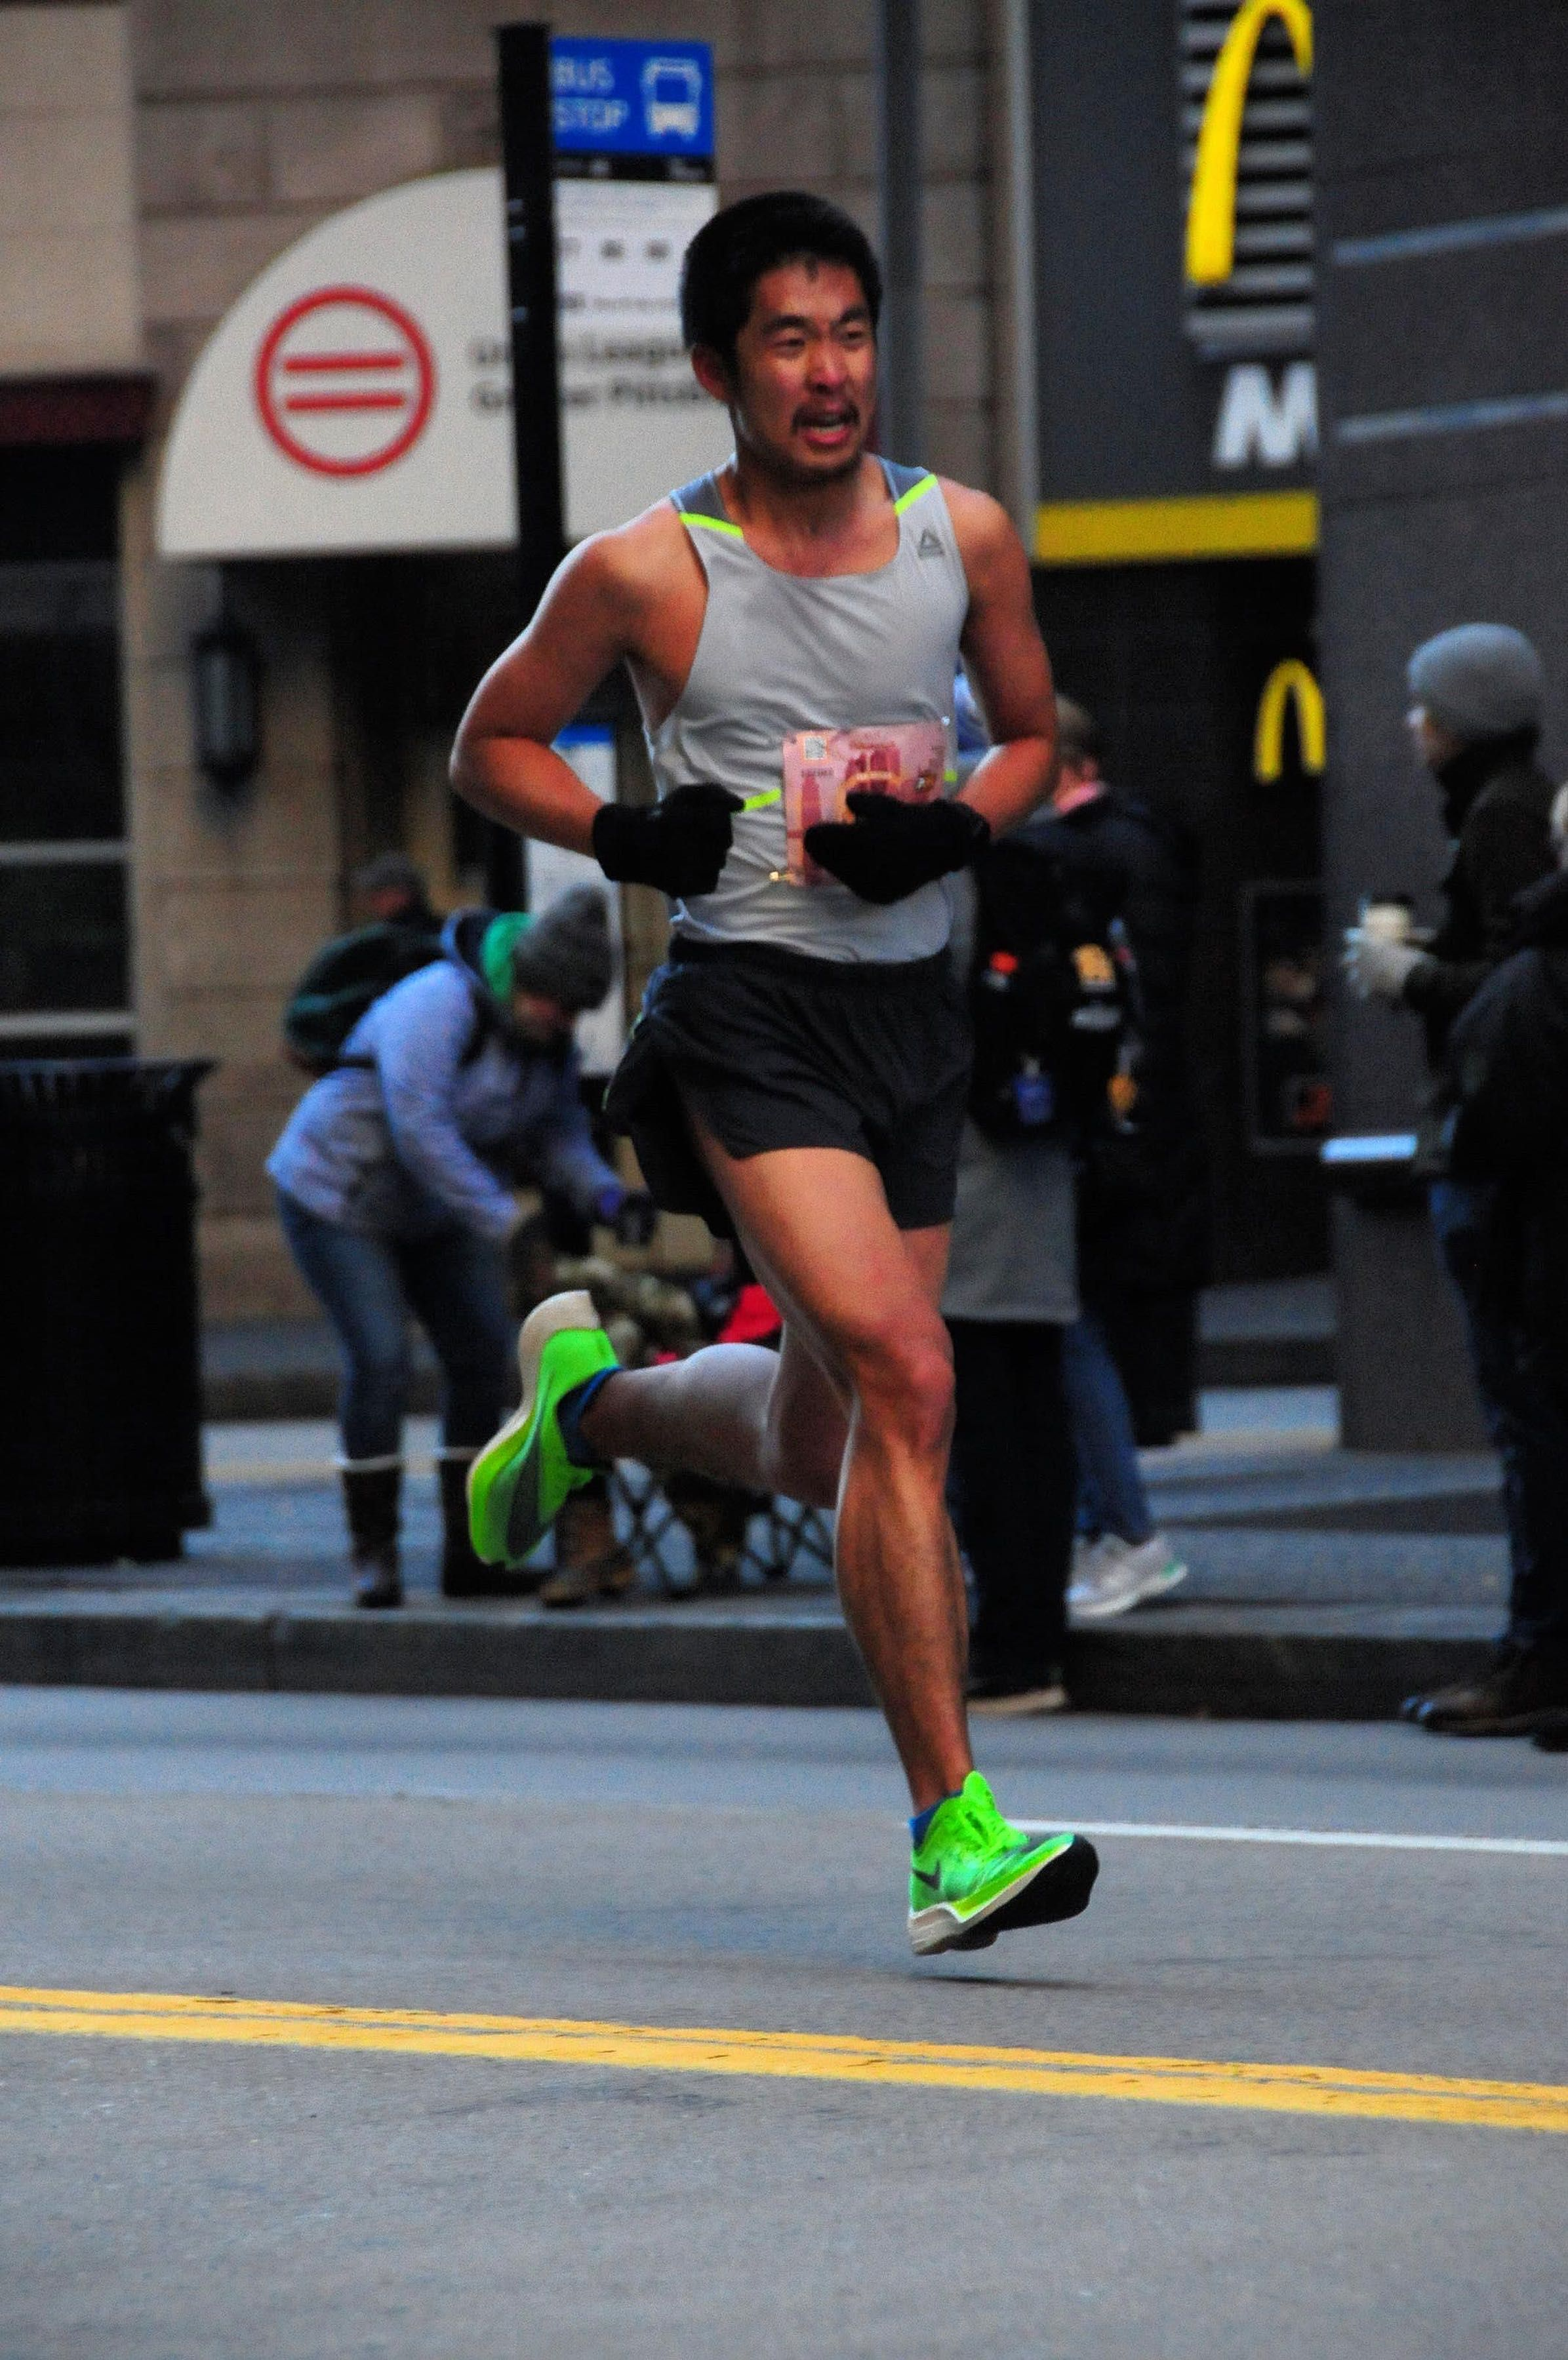 I'm a 25-Year-Old Marathoner Who Experienced COVID-19 Symptoms. Here's My Story